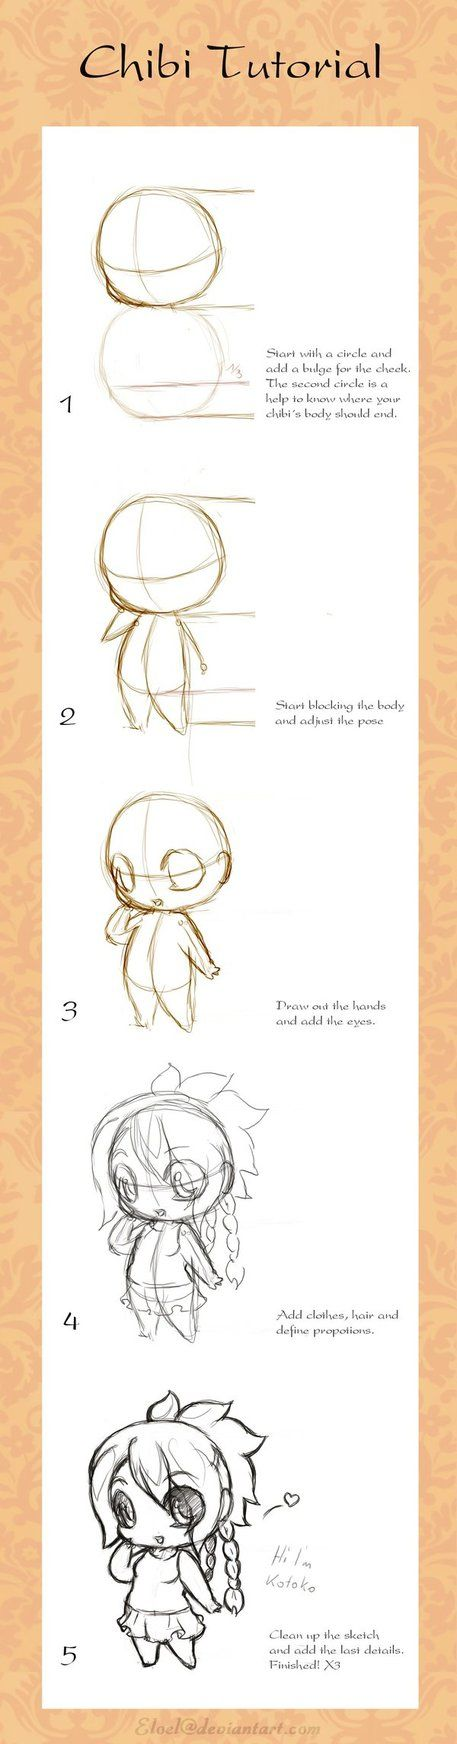 How to draw your own kawaii chibi art. Hey anime freaks!, by the way, will you guys check out an awesome form? RPGS and community chat and fan art! It's allthingsanime! Thanks!!!! ☆〜(ゝ。∂)